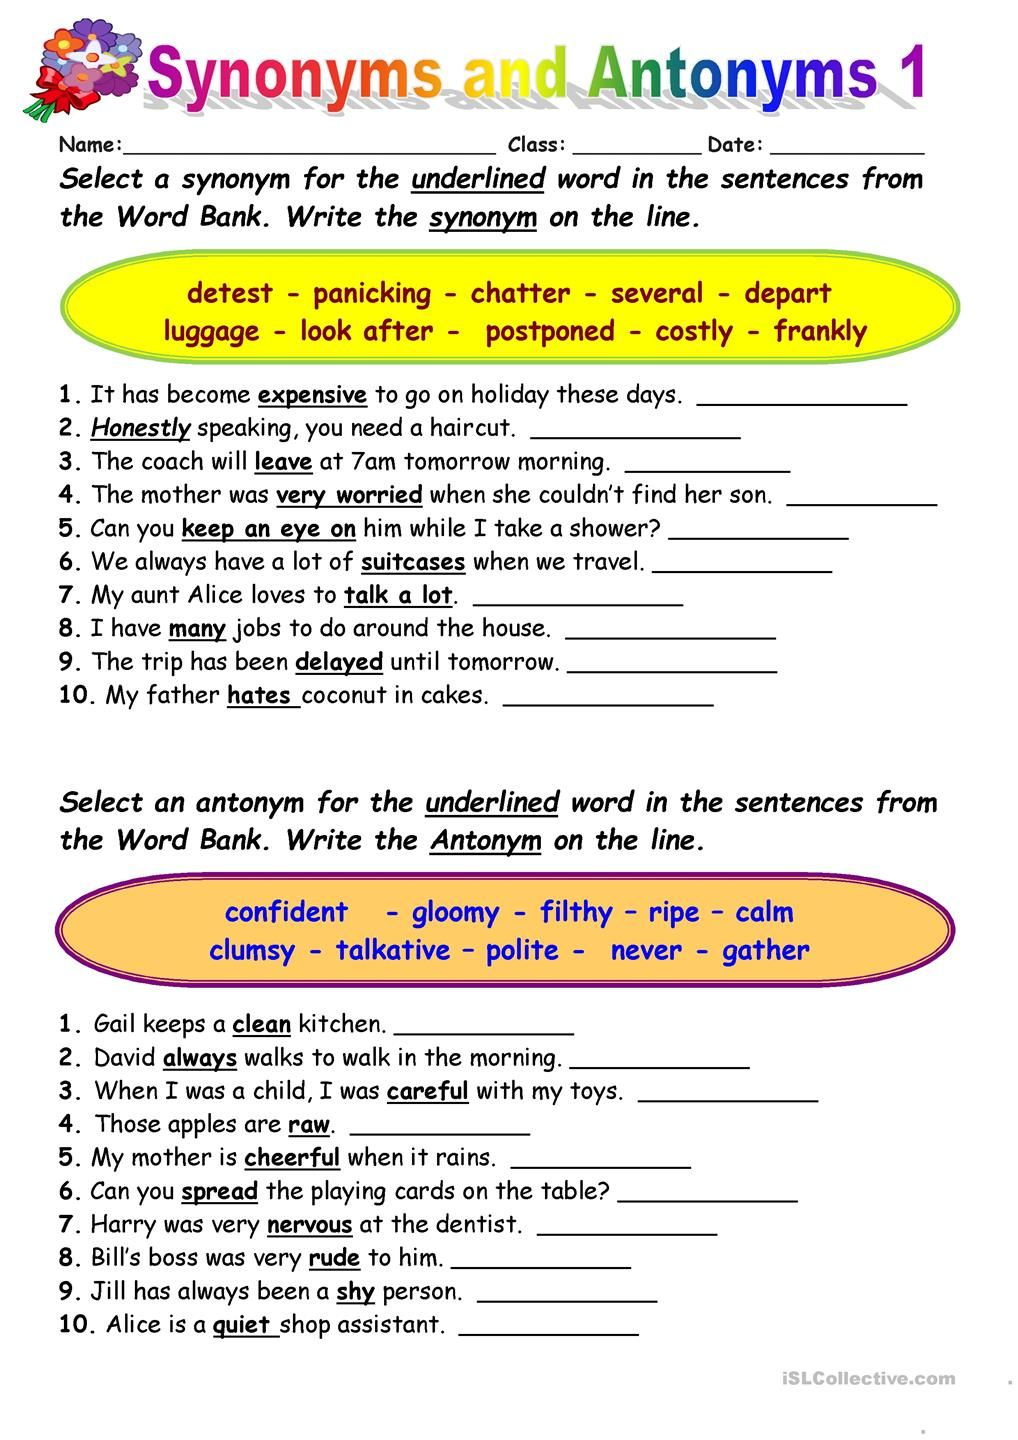 Synonyms vs Antonyms 1 | Ingles | Pinterest | Englisch